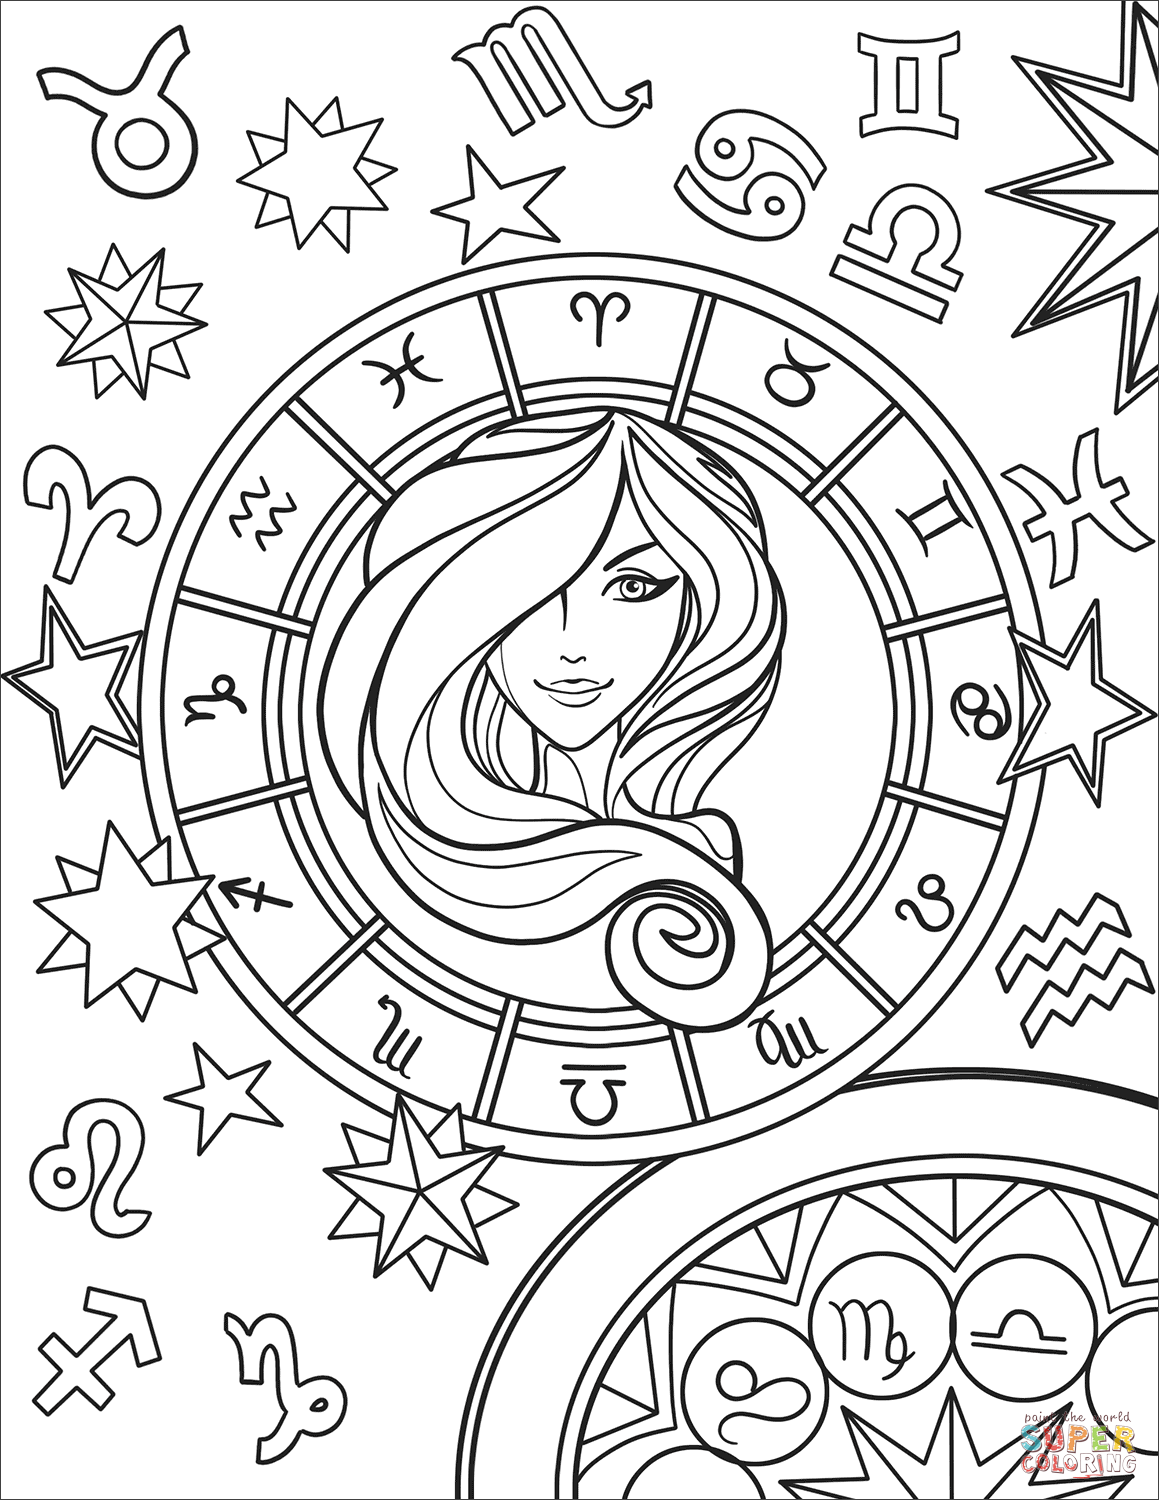 Virgo Zodiac Sign Super Coloring Coloring Pages Mandala Coloring Books Virgo Art